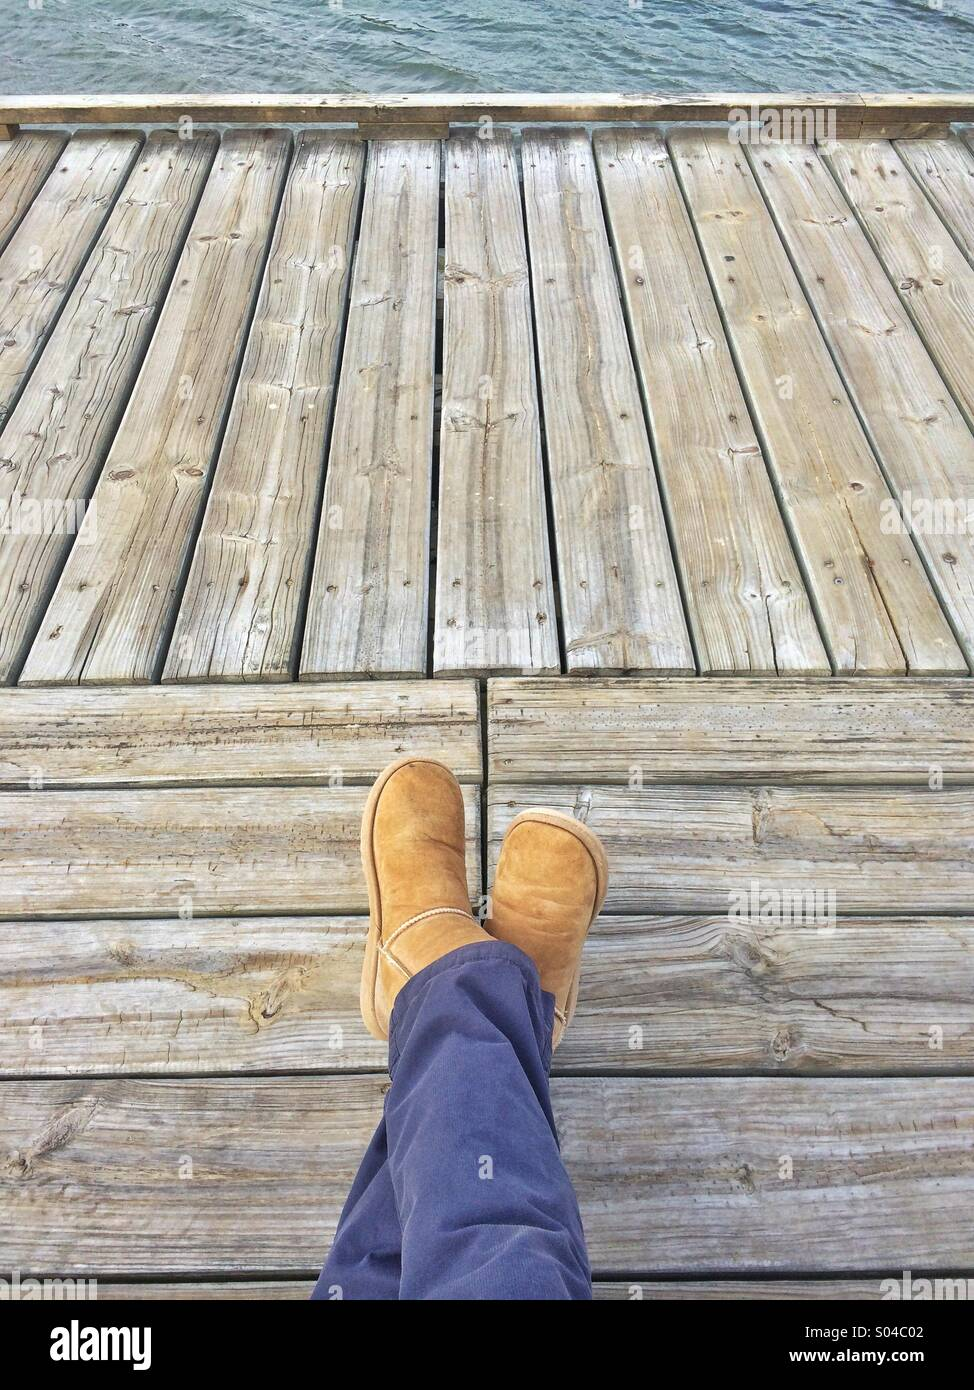 Relaxed legs crossed on wood deck looking towards Water - Stock Image